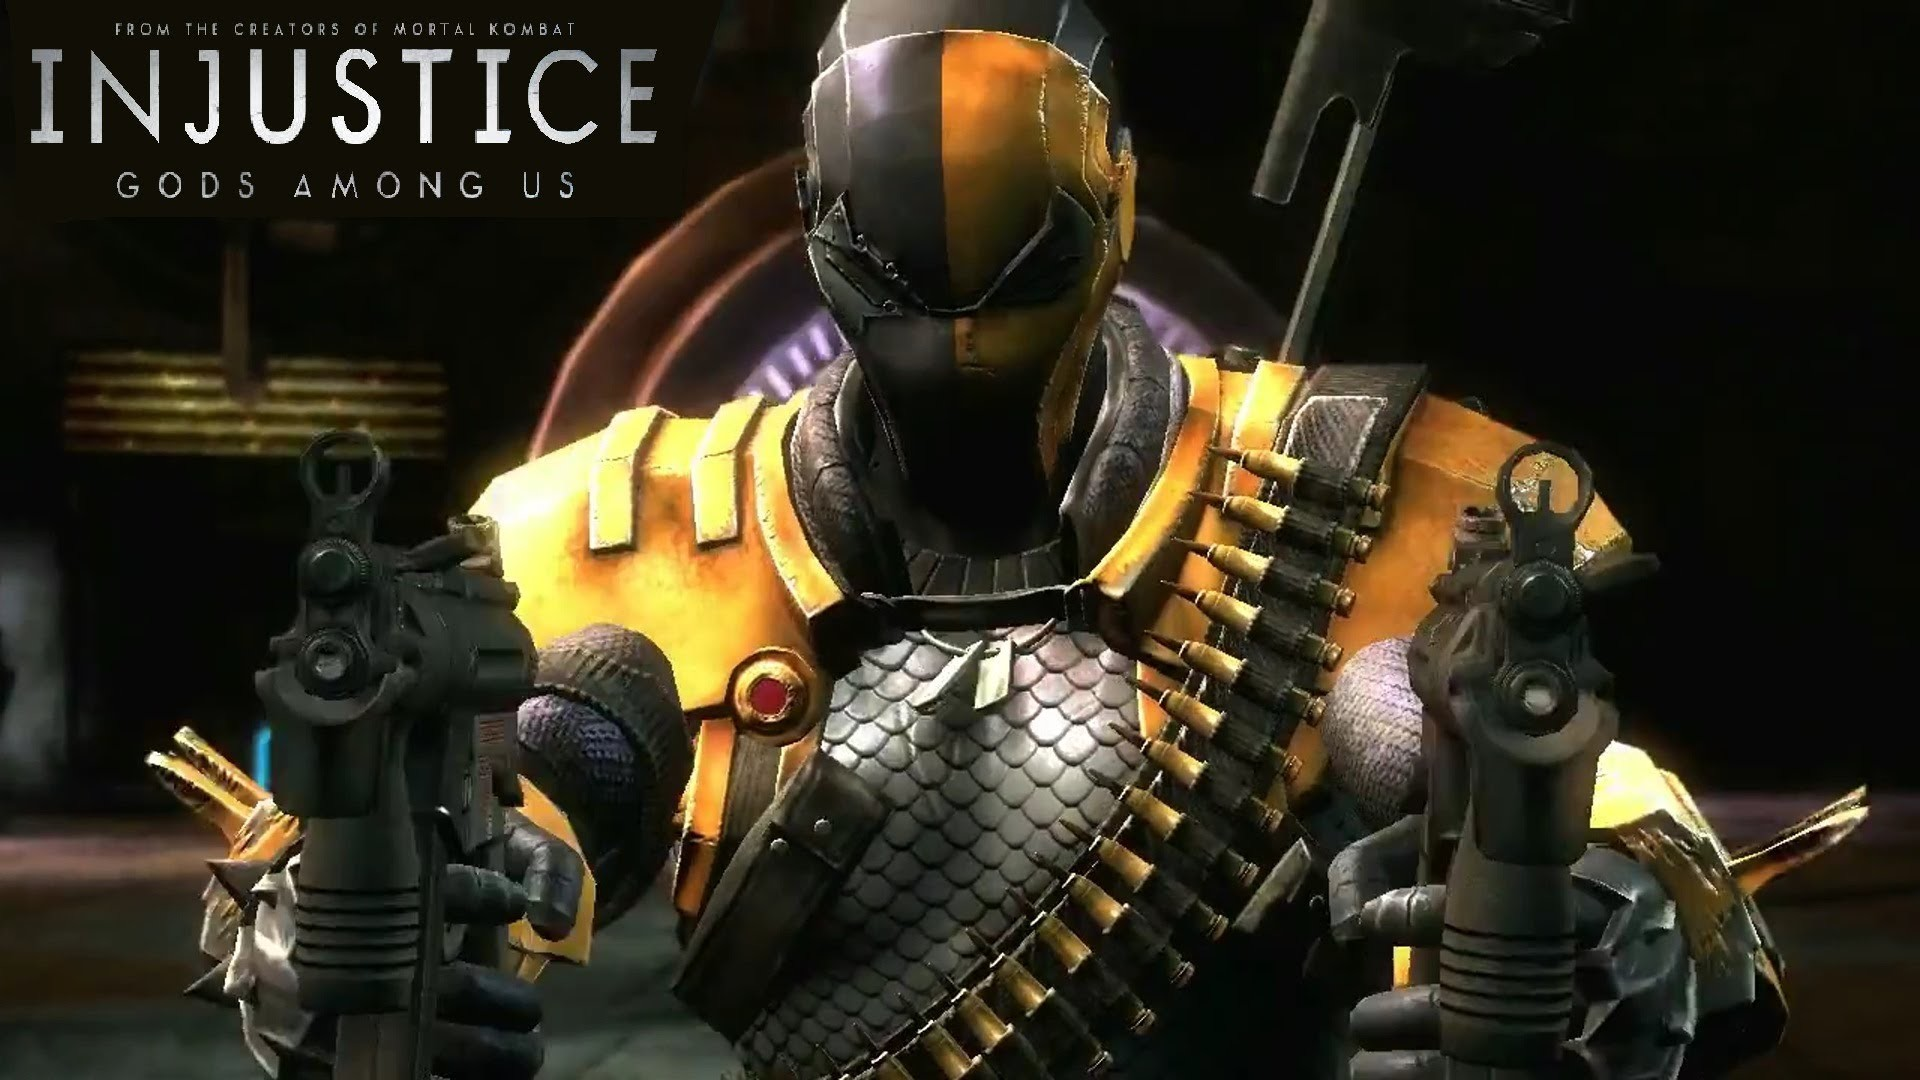 Deathstroke wallpapers 1920x1080 search results for injustice gods among us deathstroke wallpaper adorable wallpapers voltagebd Gallery